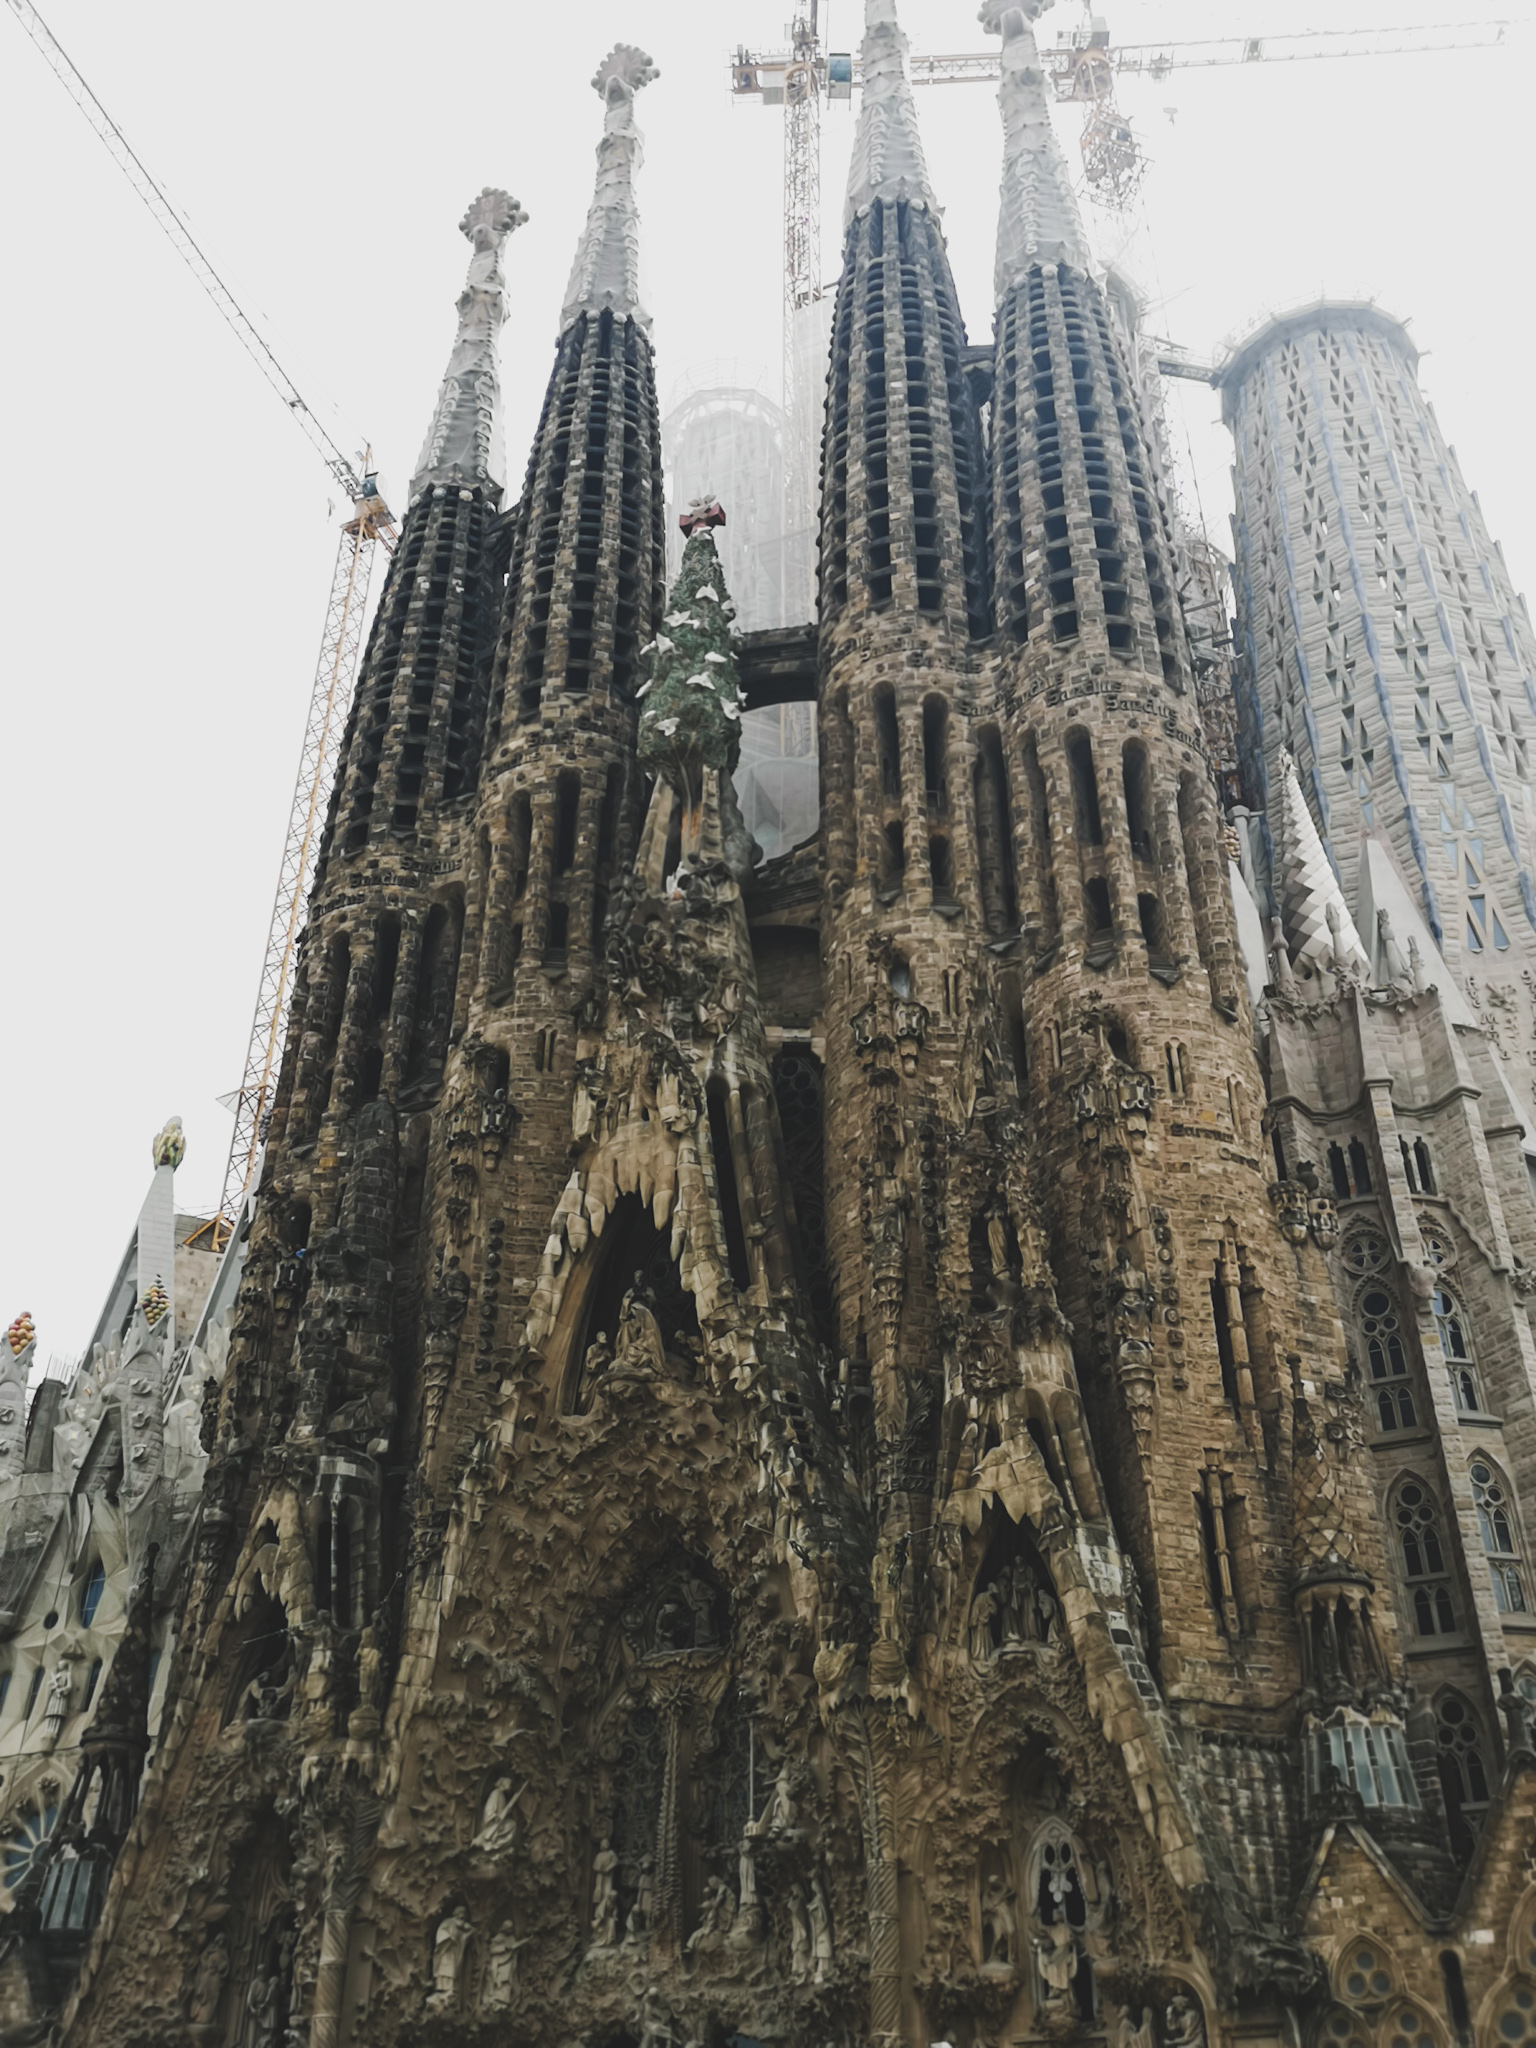 not-just-a-tit-lifestyle-blog-city-break-barcelona-sagrada-familia-stonework-old-view